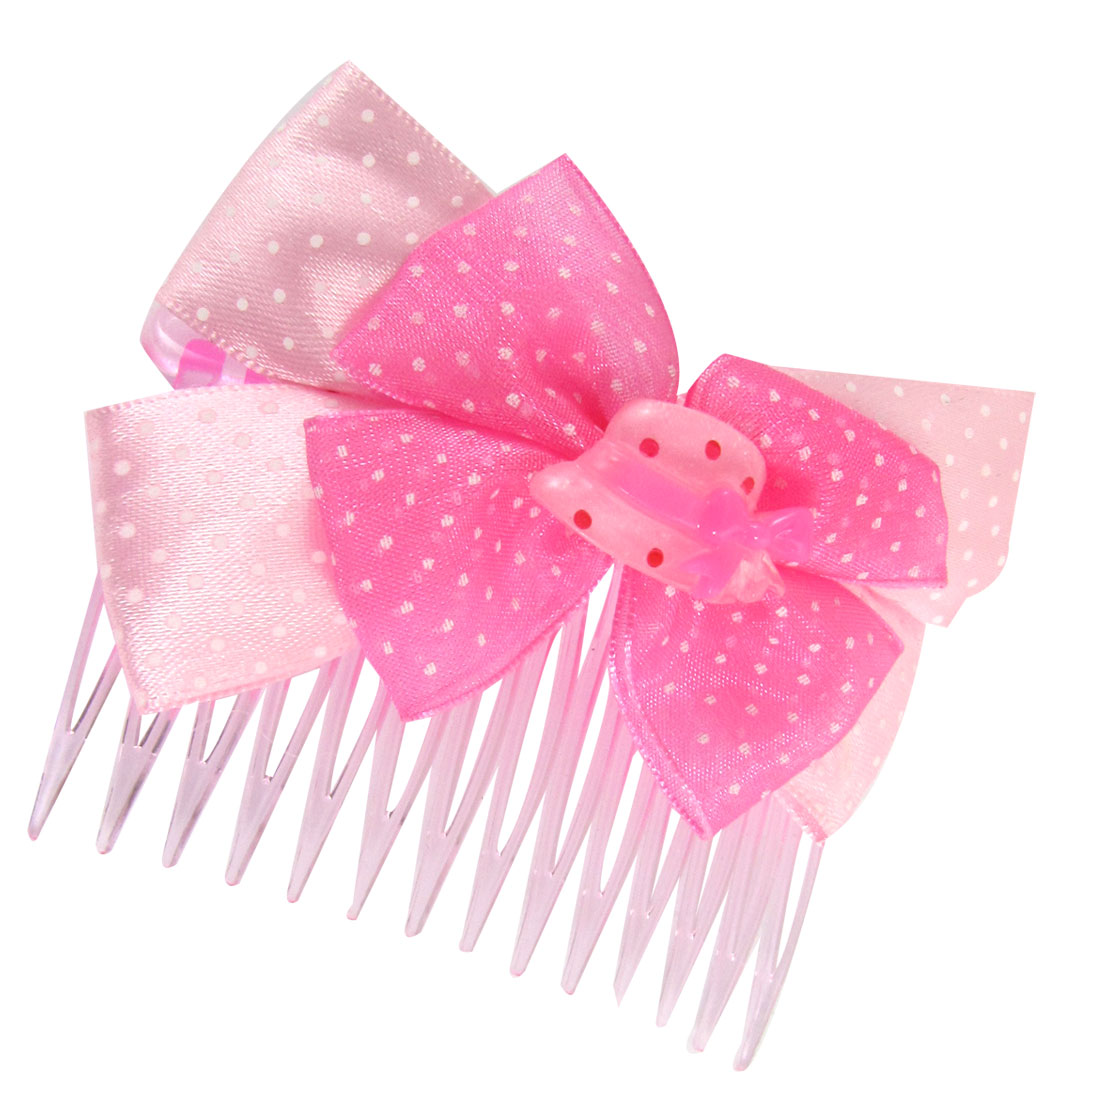 Pink Magenta Bowknot White Dotted Plastic Hat Decor 14 Tooth Comb Hair Clips for Lady